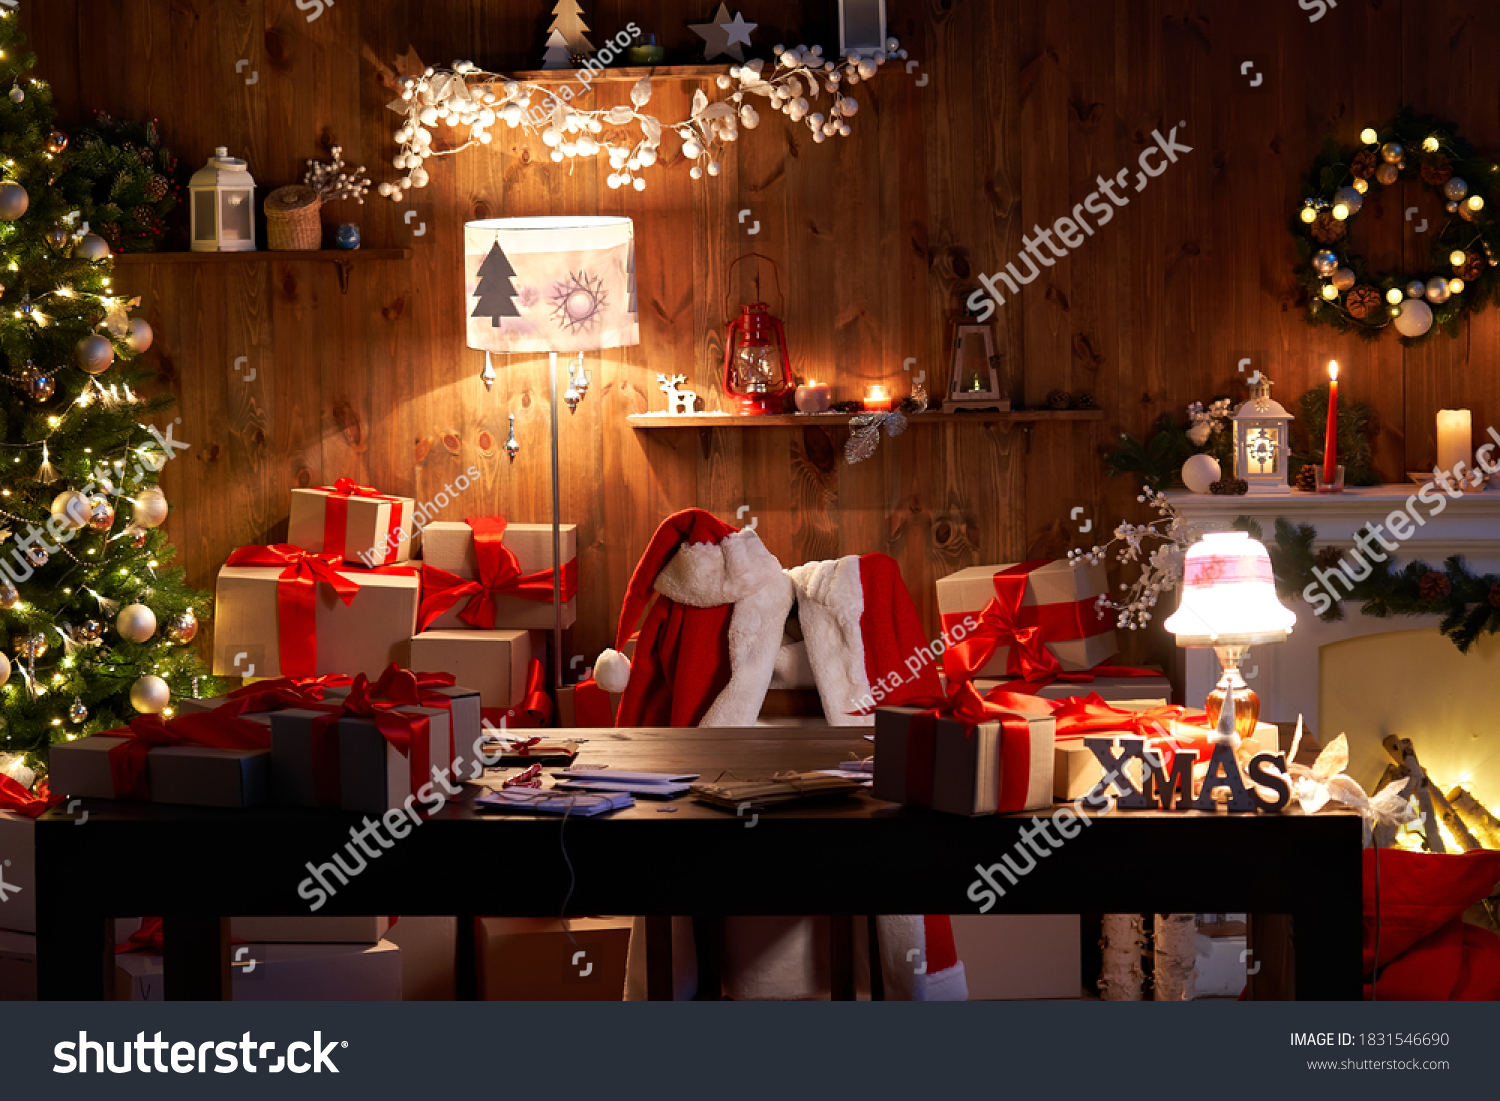 Santa Claus costume and hat hanging on chair at table with Merry Christmas decor gifts presents on holiday eve in cozy Santa home workshop interior late in night with light on xmas tree and fireplace. #1831546690